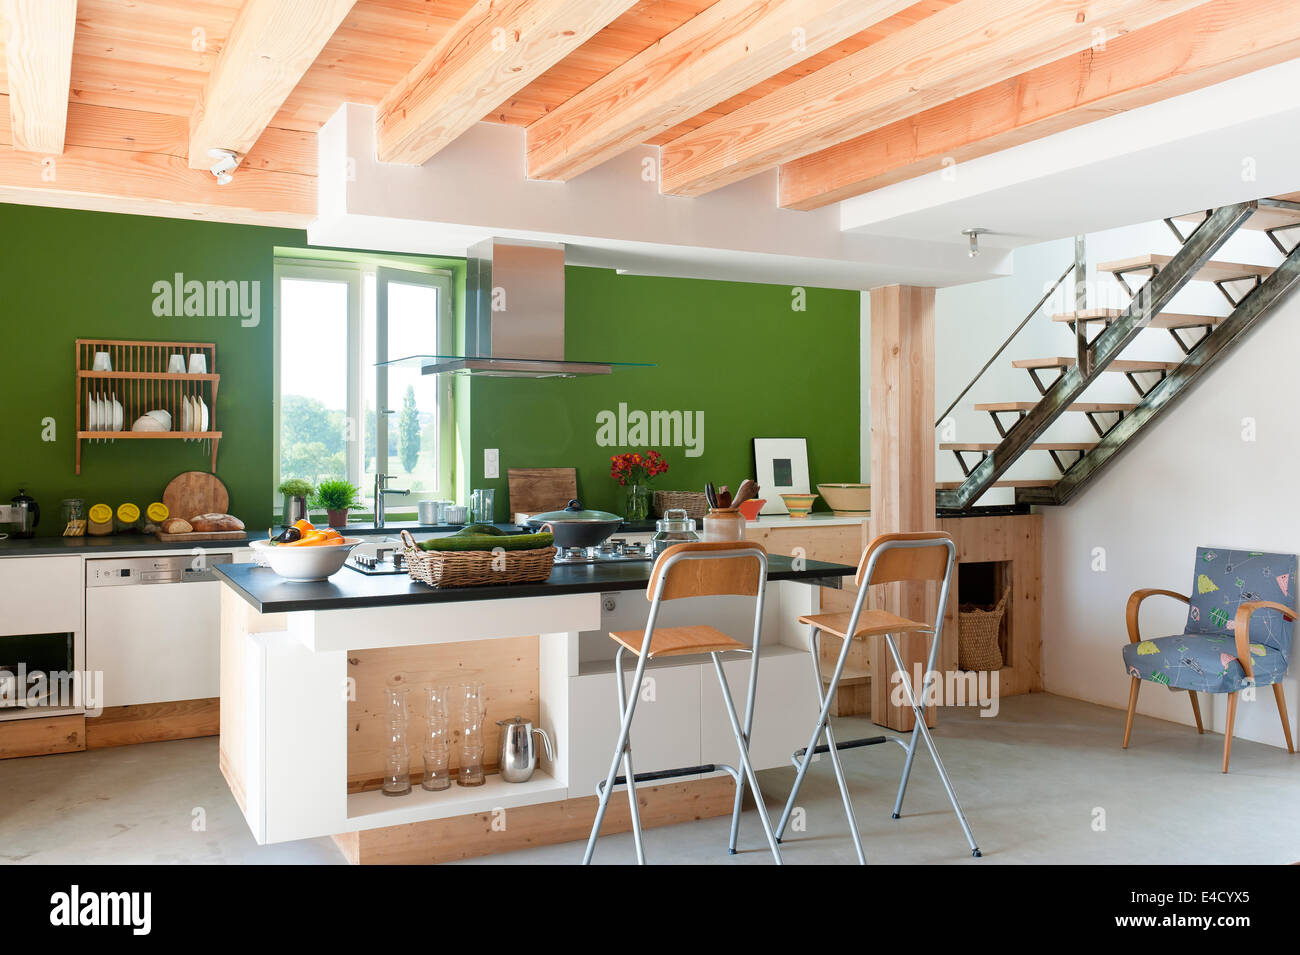 Bright Spacious Kitchen In New Extension With Wooden Ceiling Beams Folding Bar Stools And Island